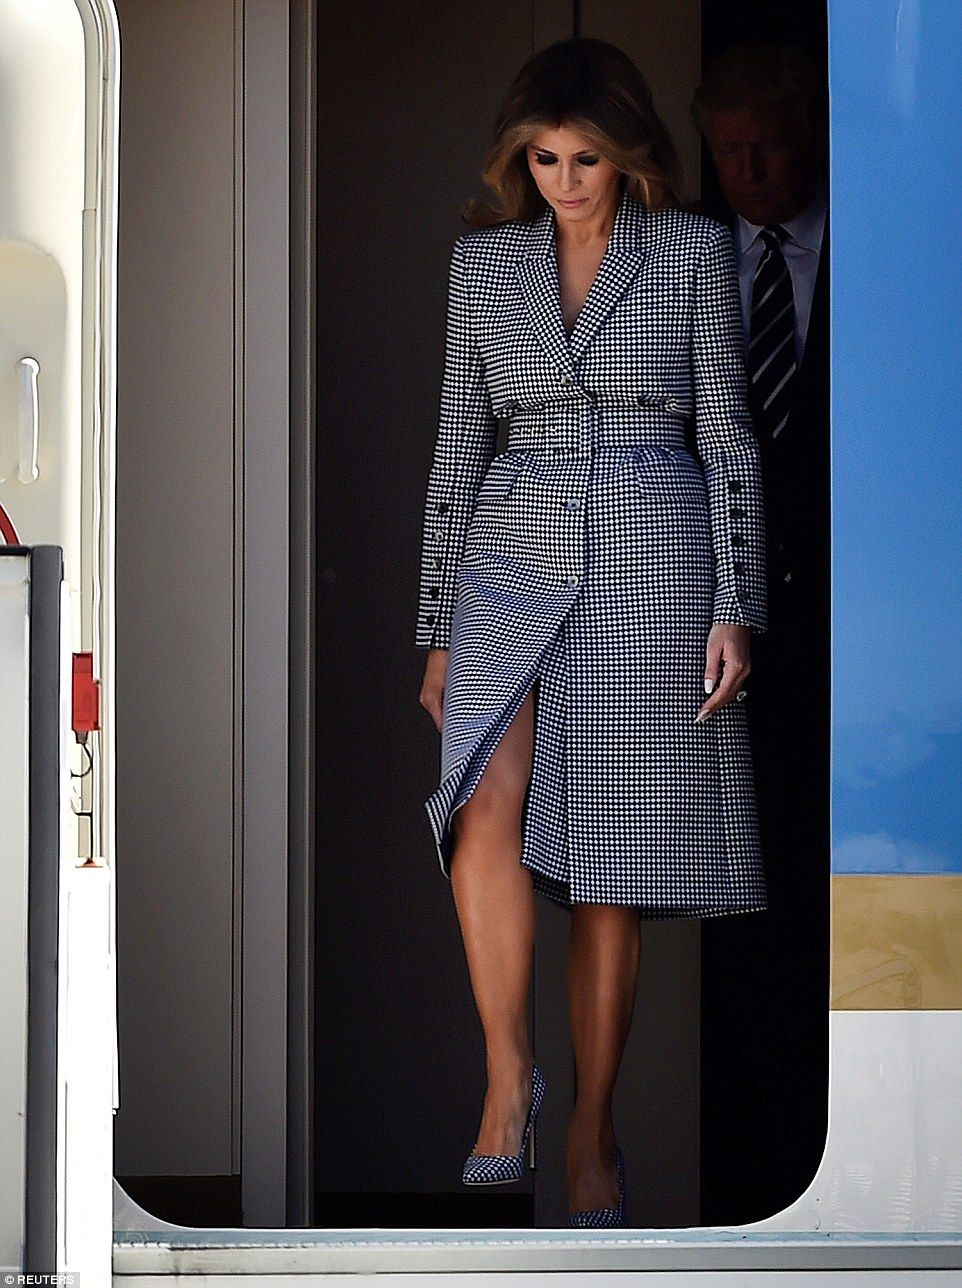 fb5e7fdb52b9 Melania Trump changes outfits and lets her hair down before Brussels ...